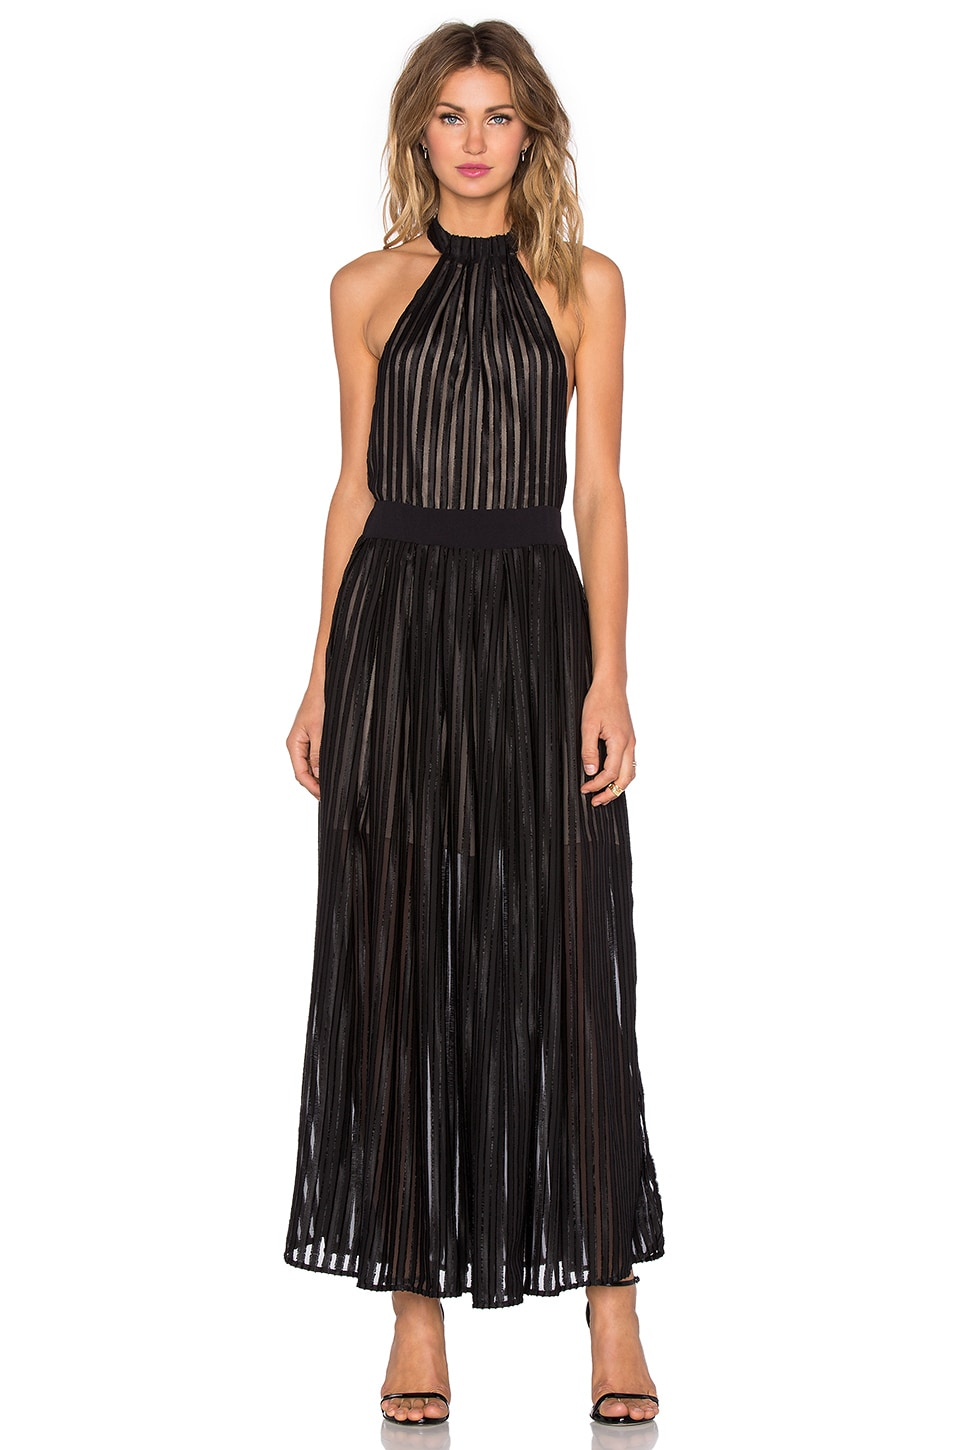 Regal Maxi Dress